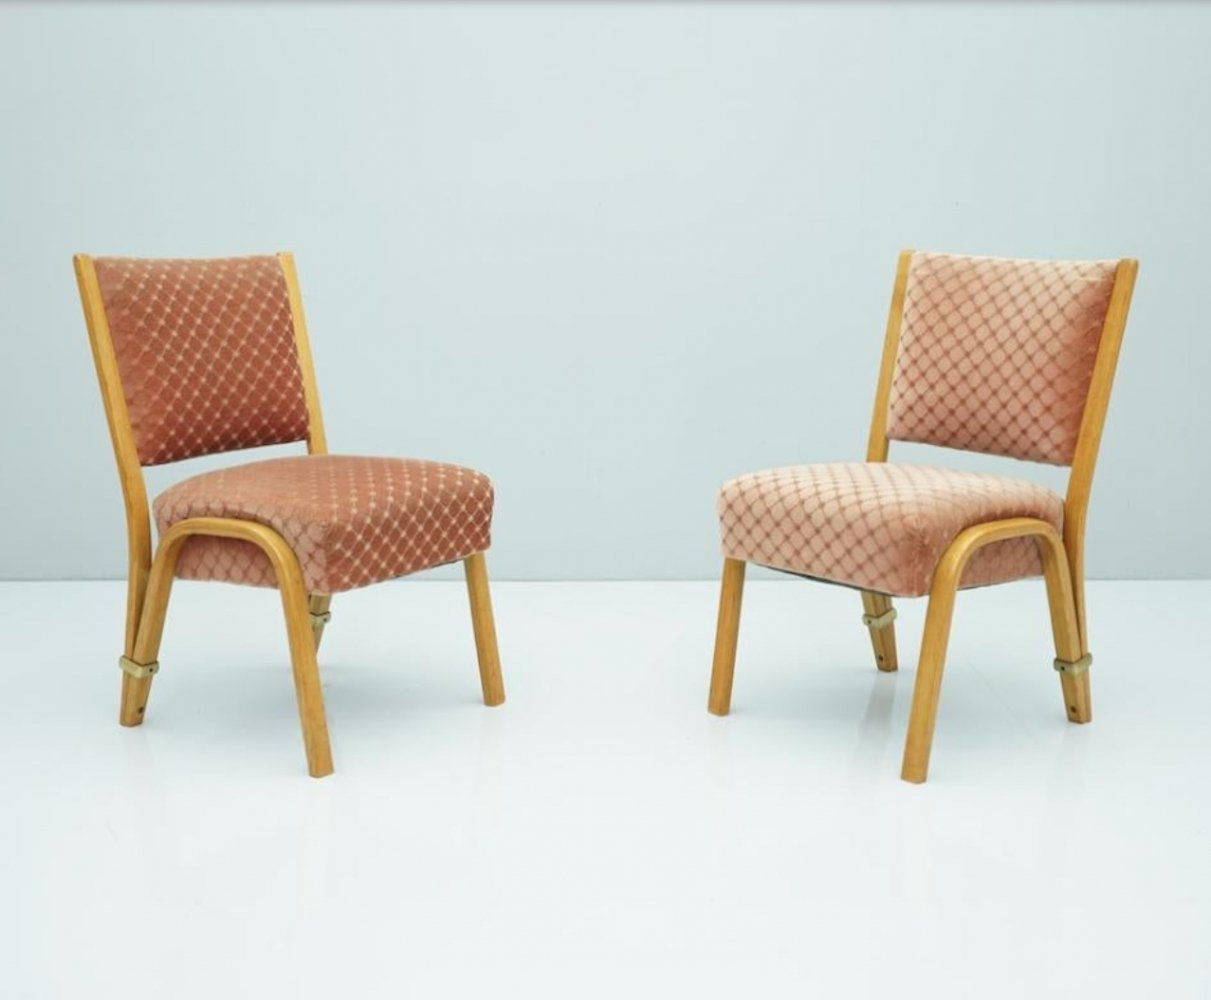 Pair of Hugues Steiner Chairs, France 1950s